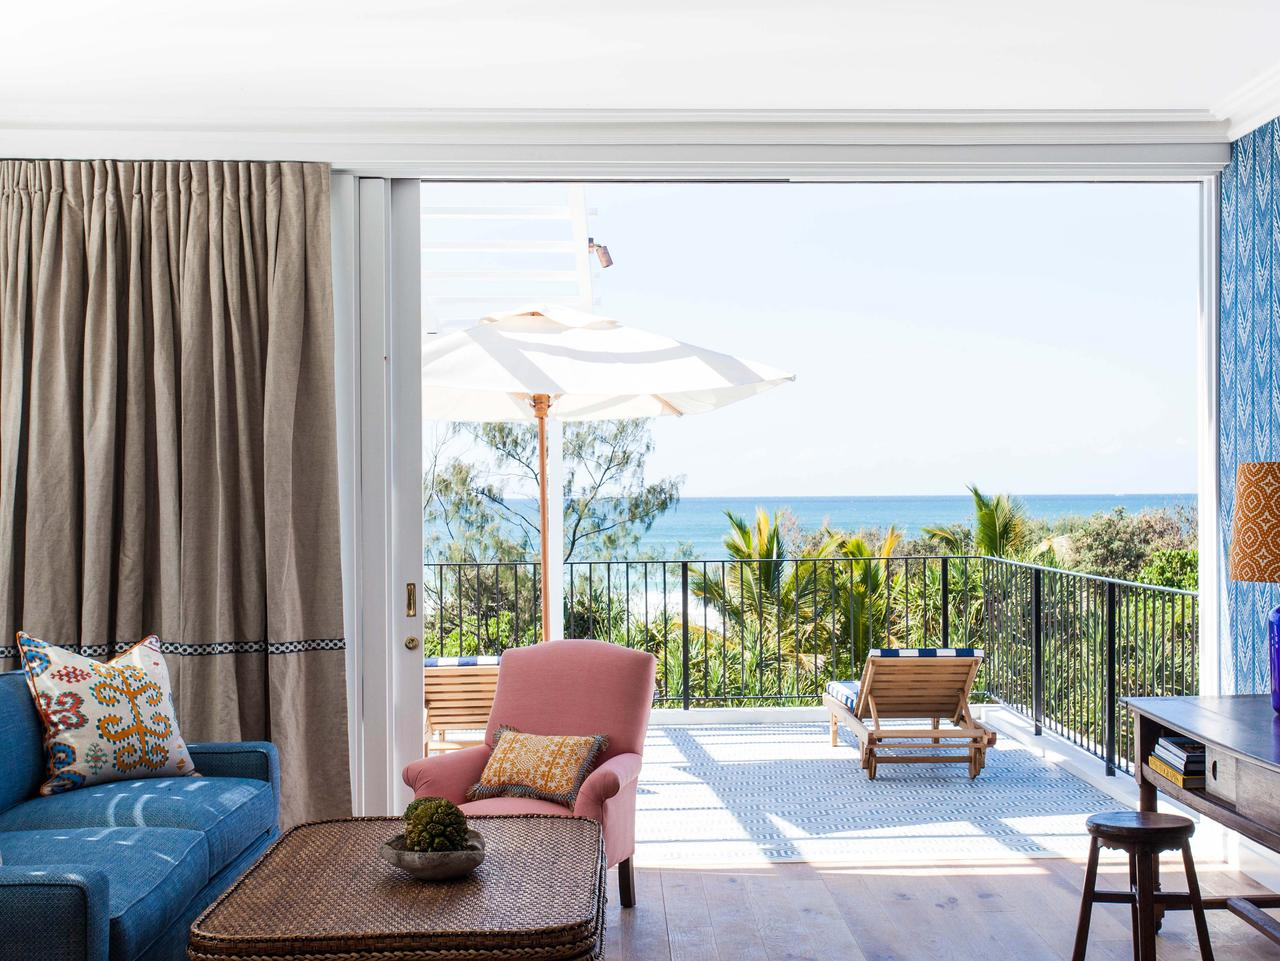 Halycon House, Cabarita Beach, NSW  Image supplied